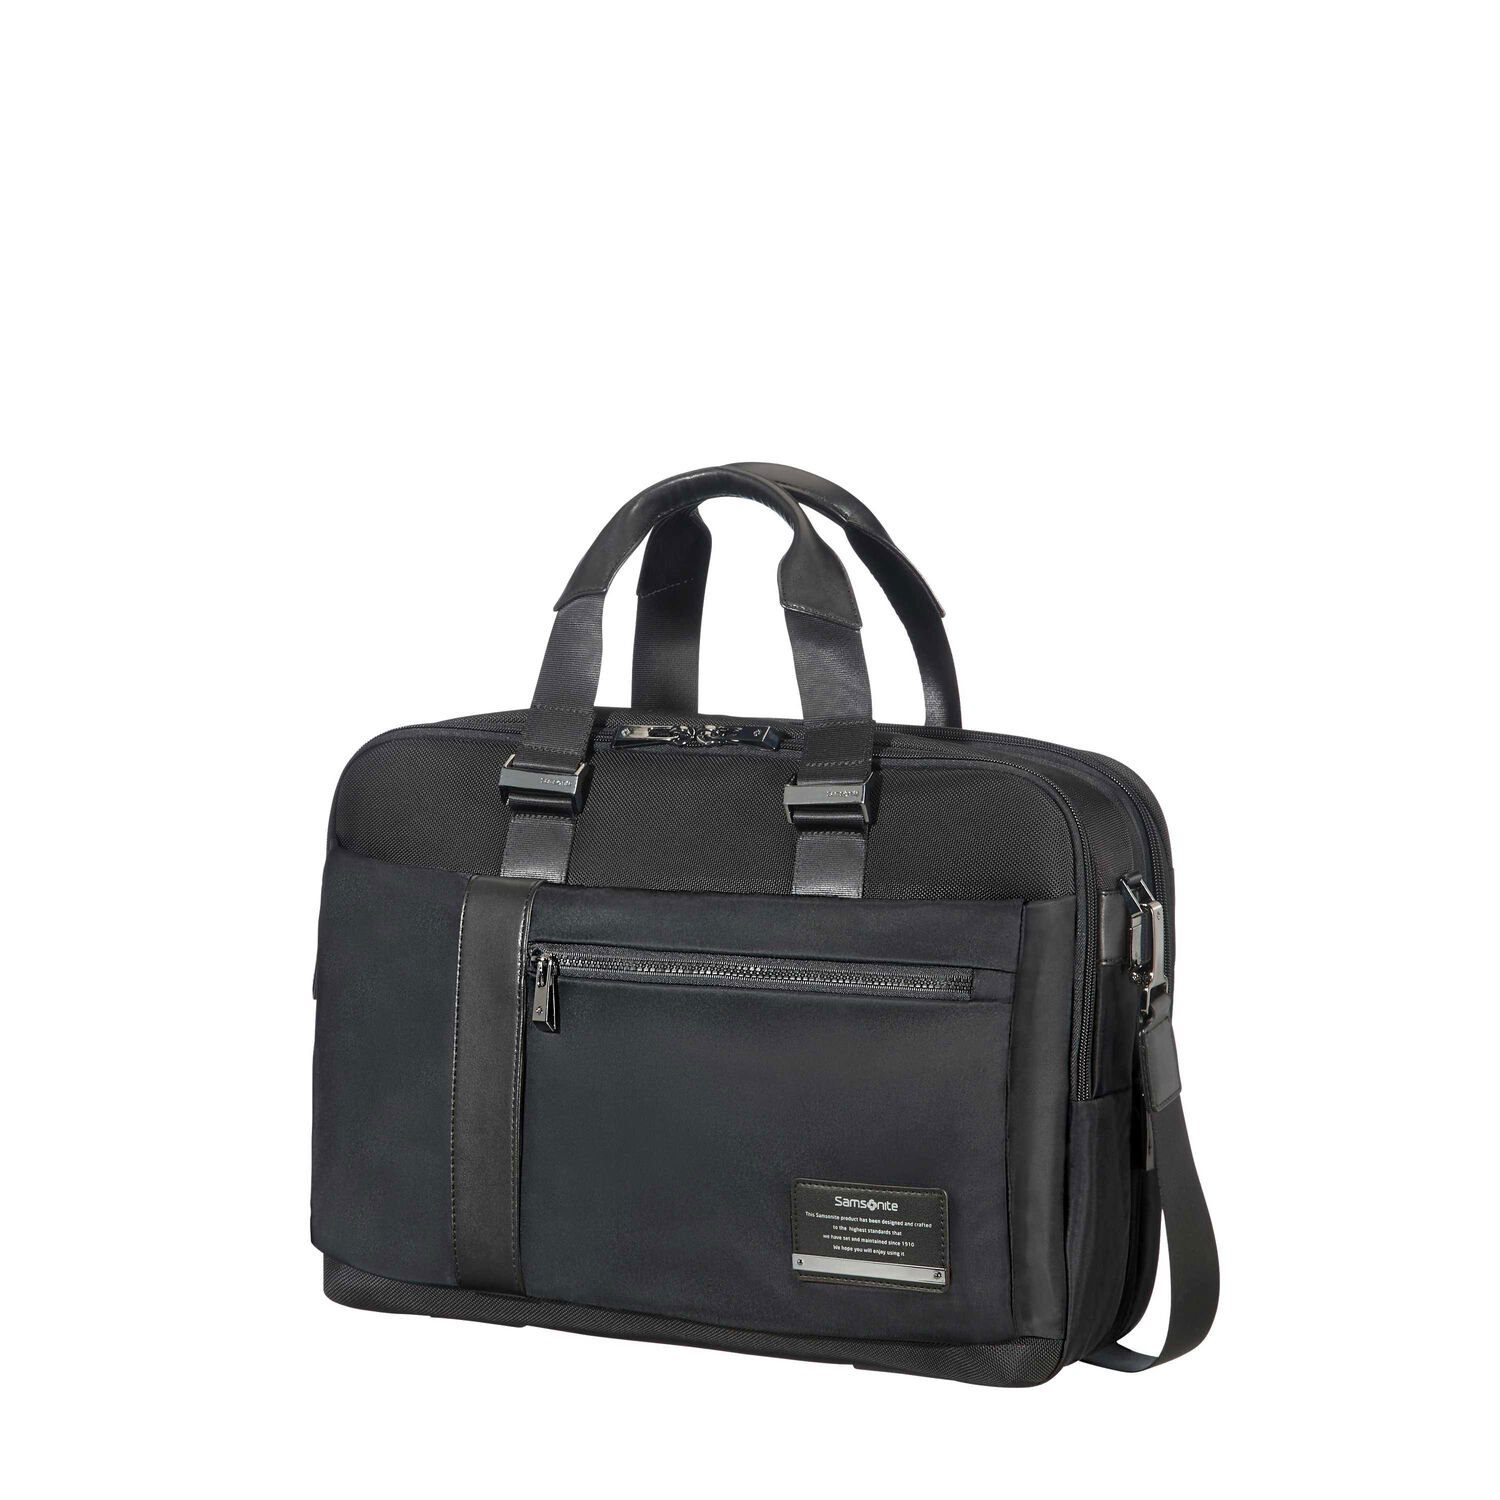 11b5df097311 Samsonite Openroad Laptop Brief - Expandable